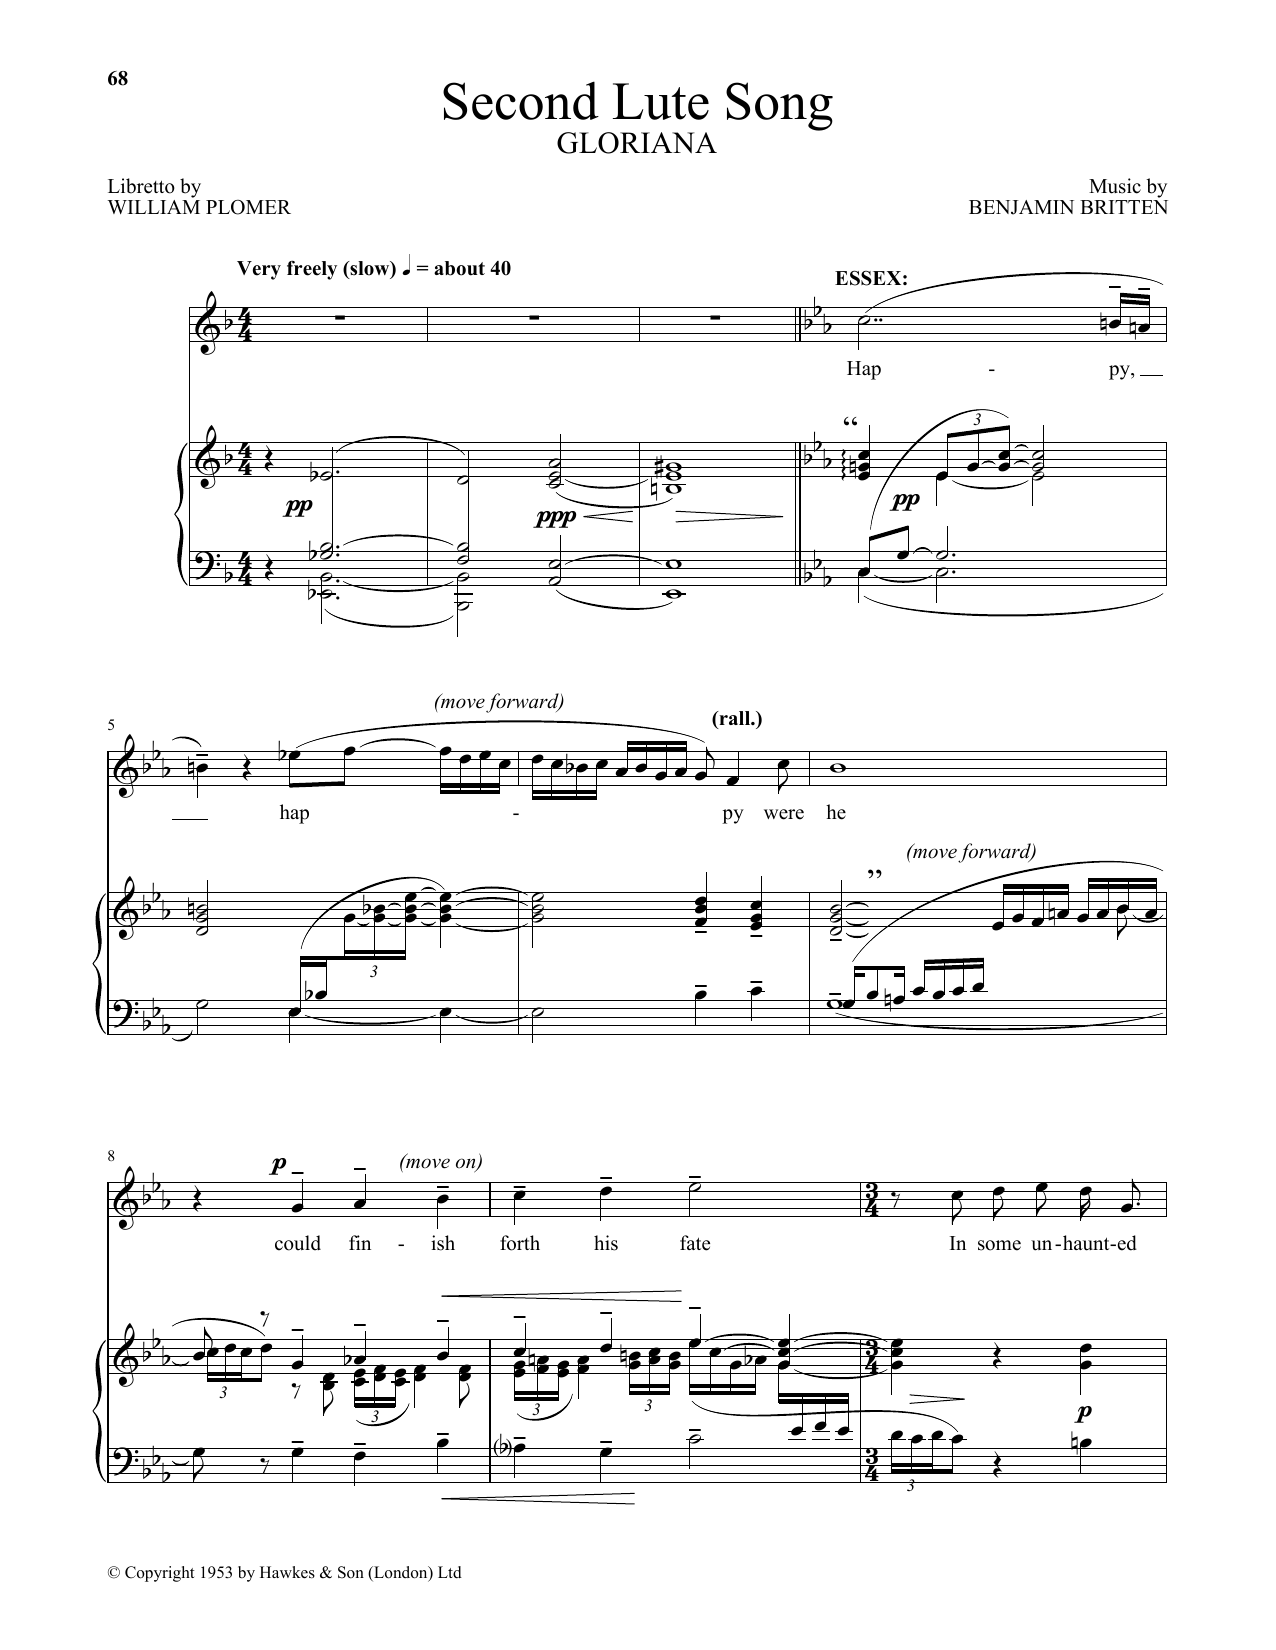 Benjamin Britten Second Lute Song (from Gloriana) sheet music notes and chords. Download Printable PDF.